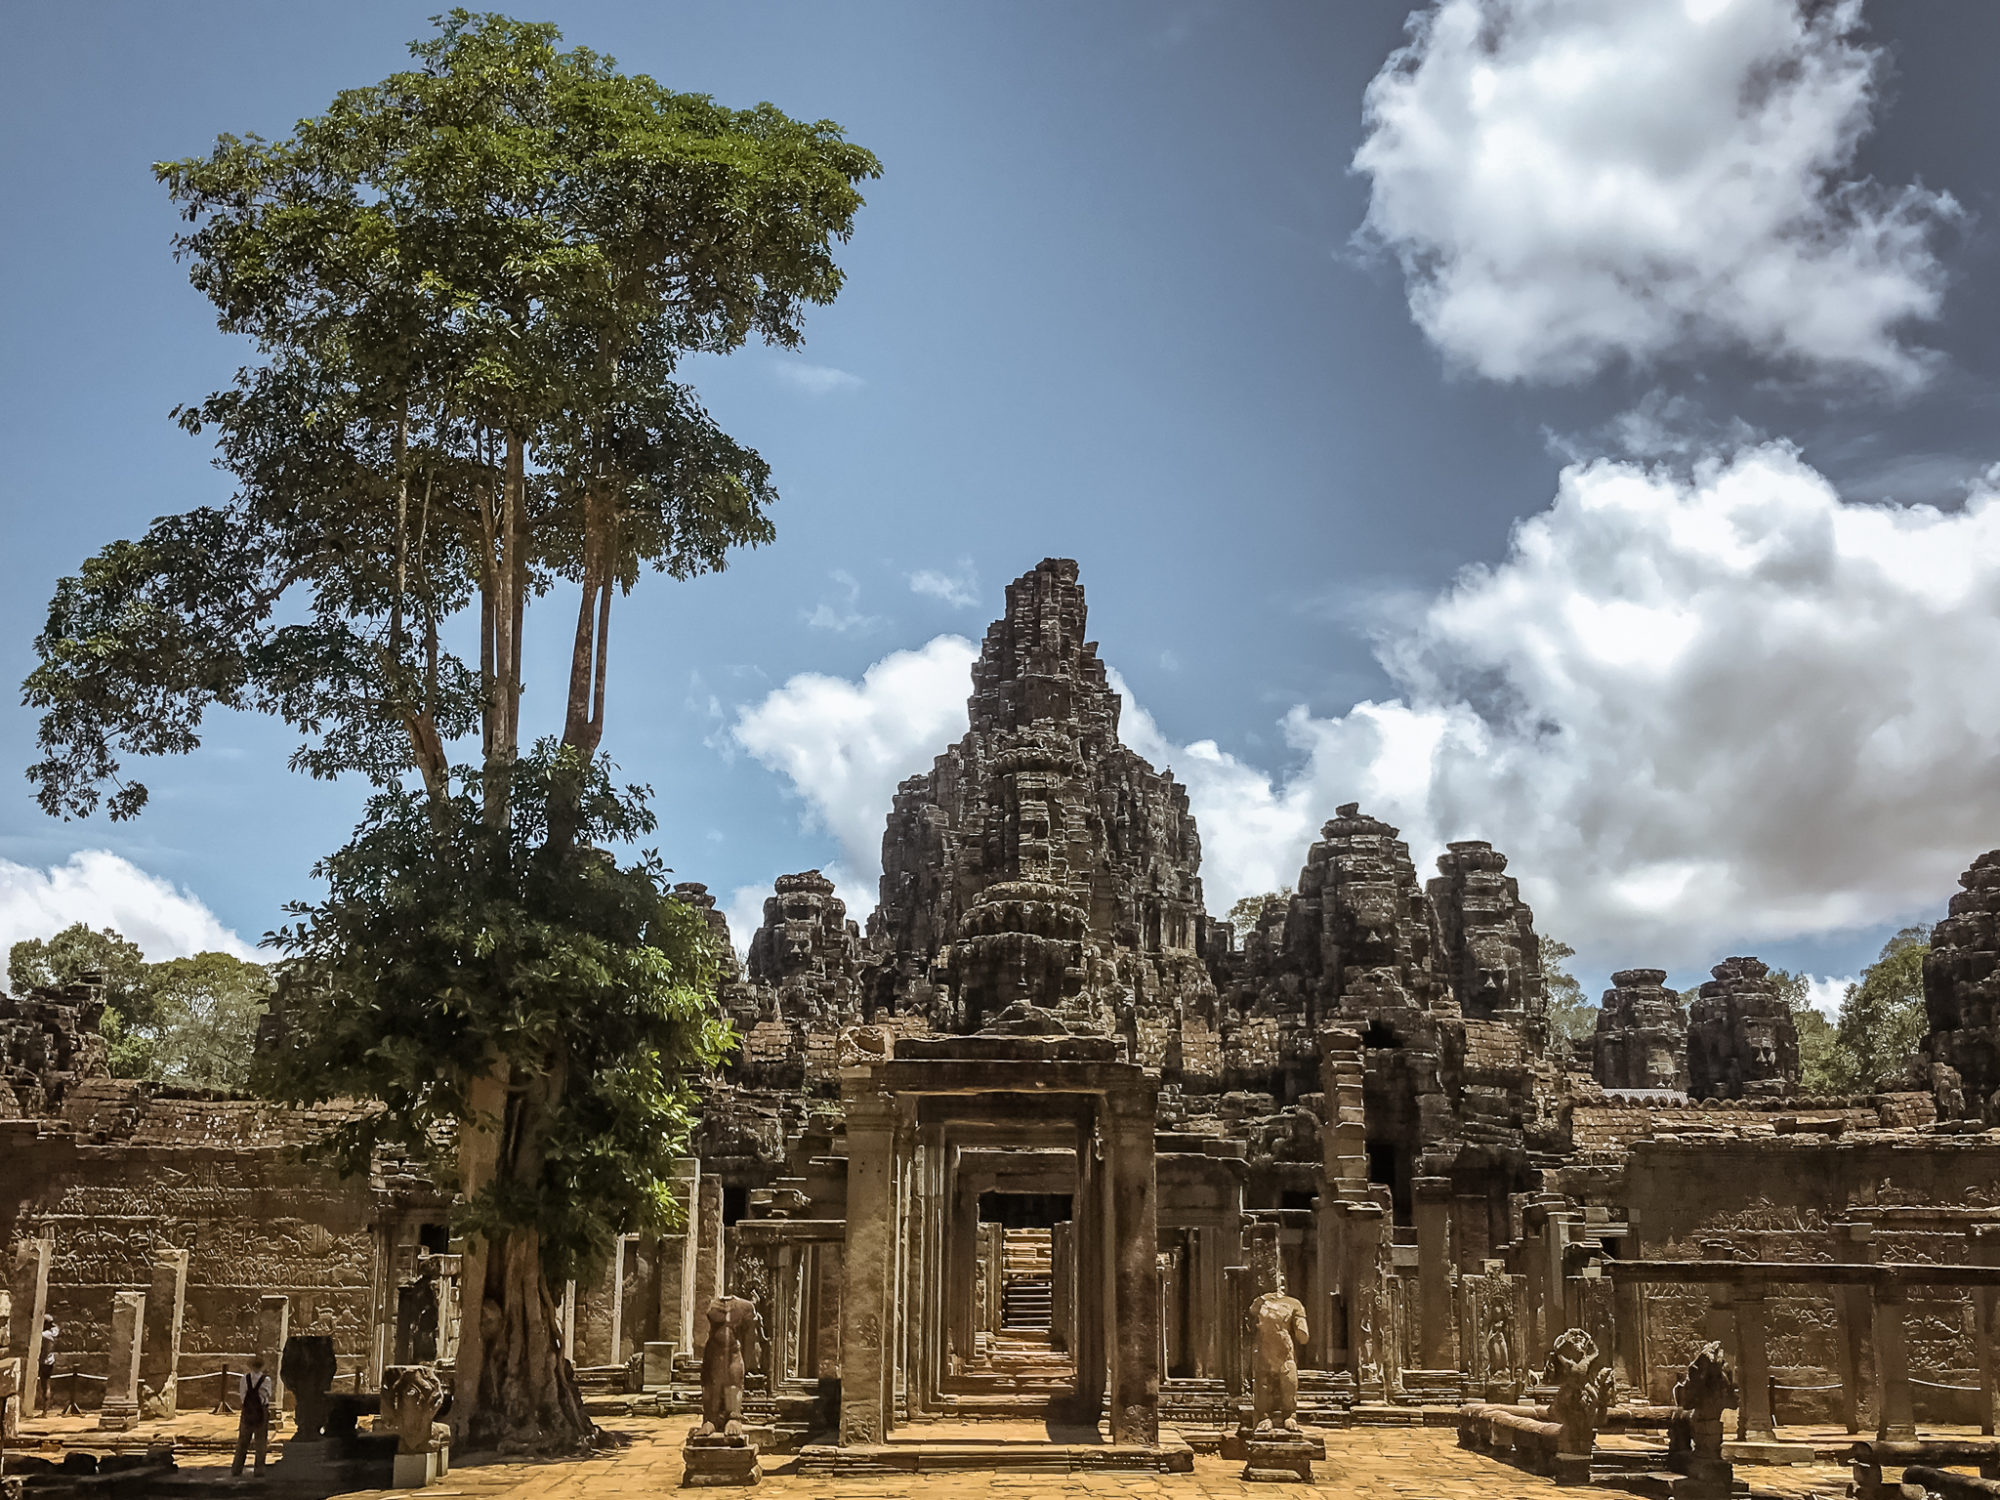 Bayon Temple in Cambodia's Siem Reap